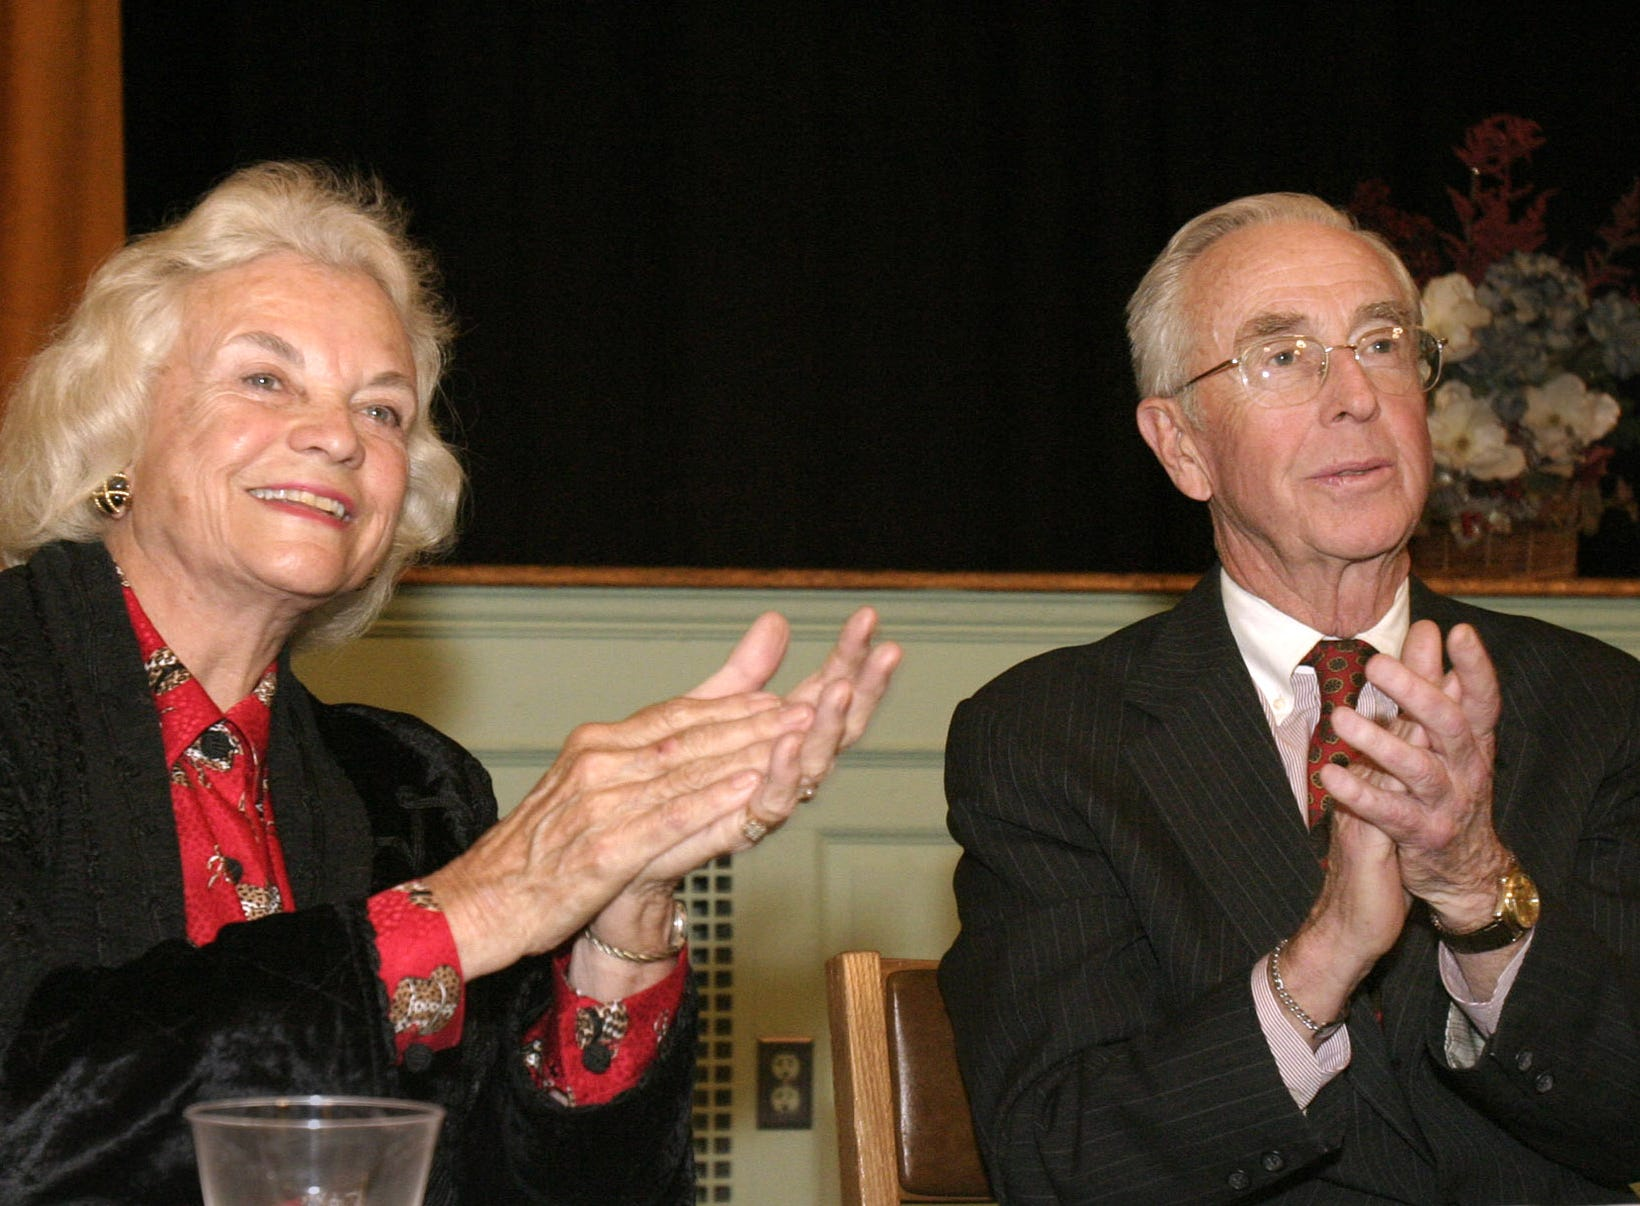 Supreme Court Justice Sandra Day O'Connor, left, and husband, John, attend an awards ceremony at Touro Law Center in Huntington, NY, March 9, 2004.